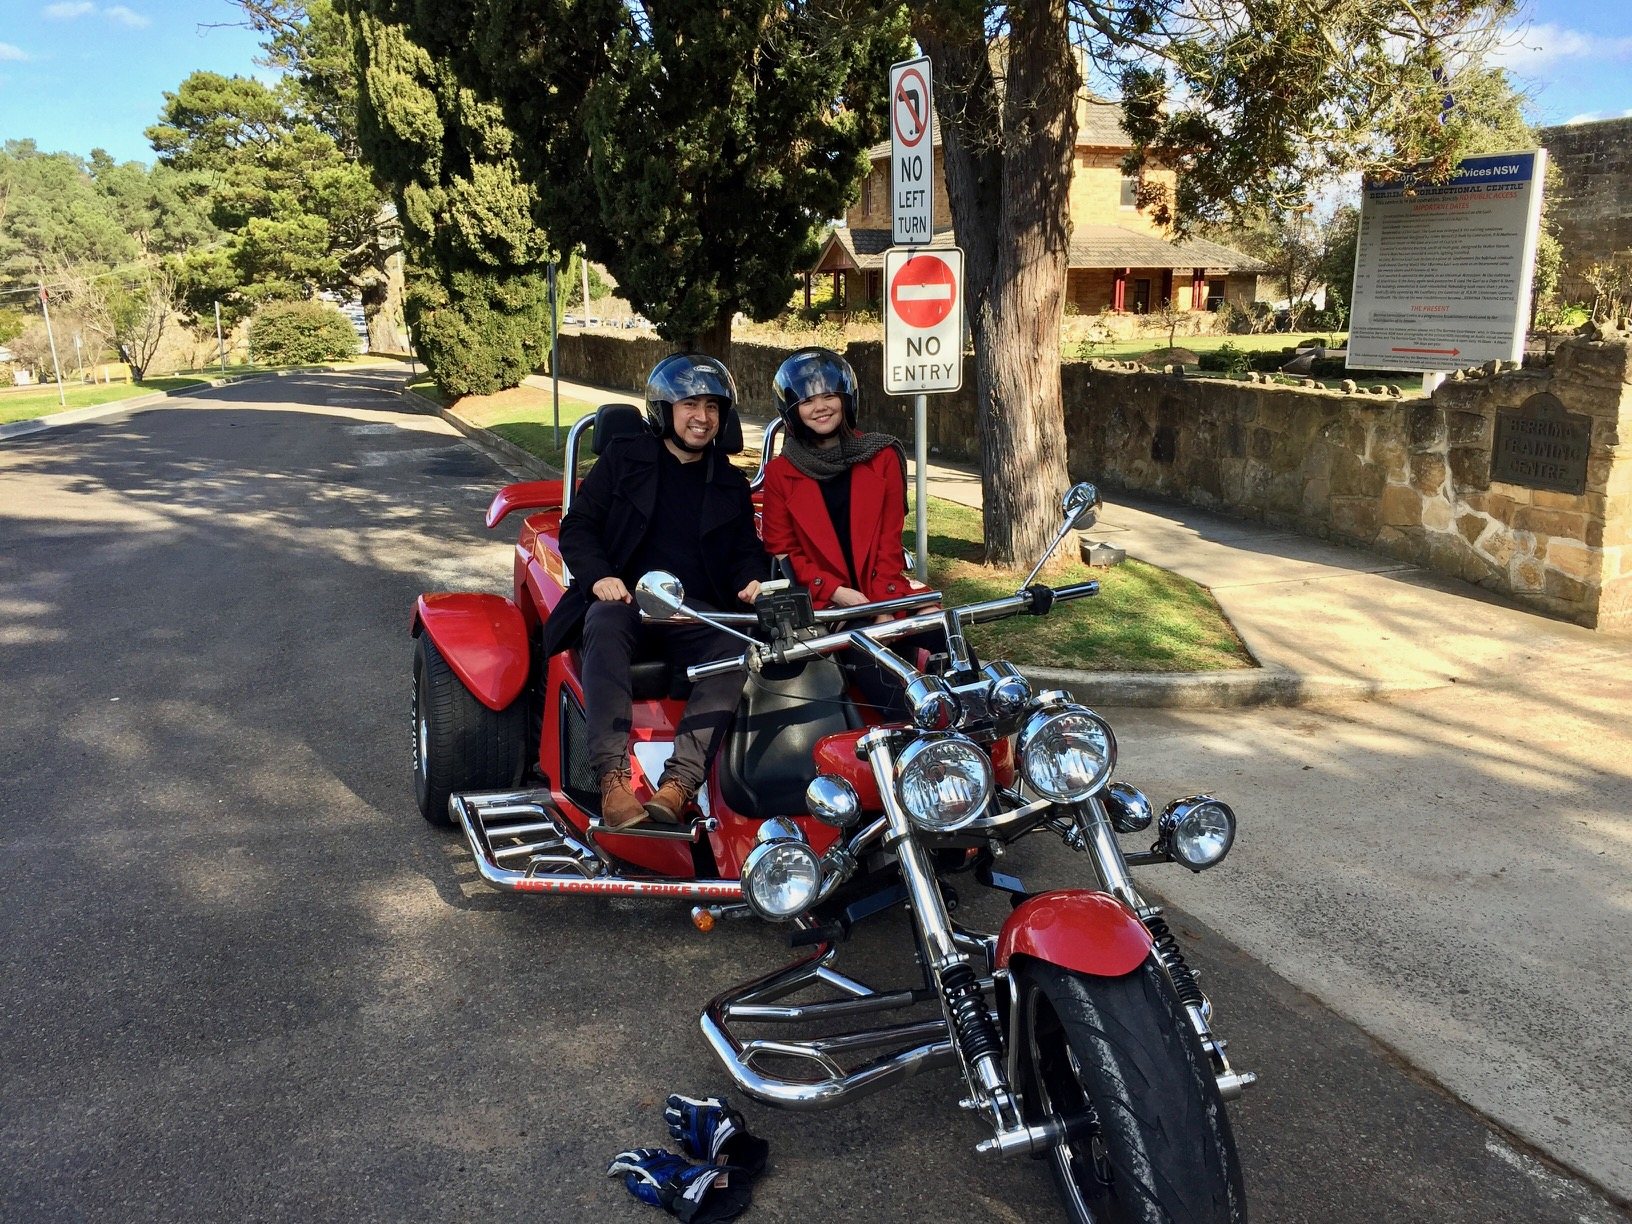 Hotel Review: A weekend away at Peppers Craigieburn in Bowral, NSW